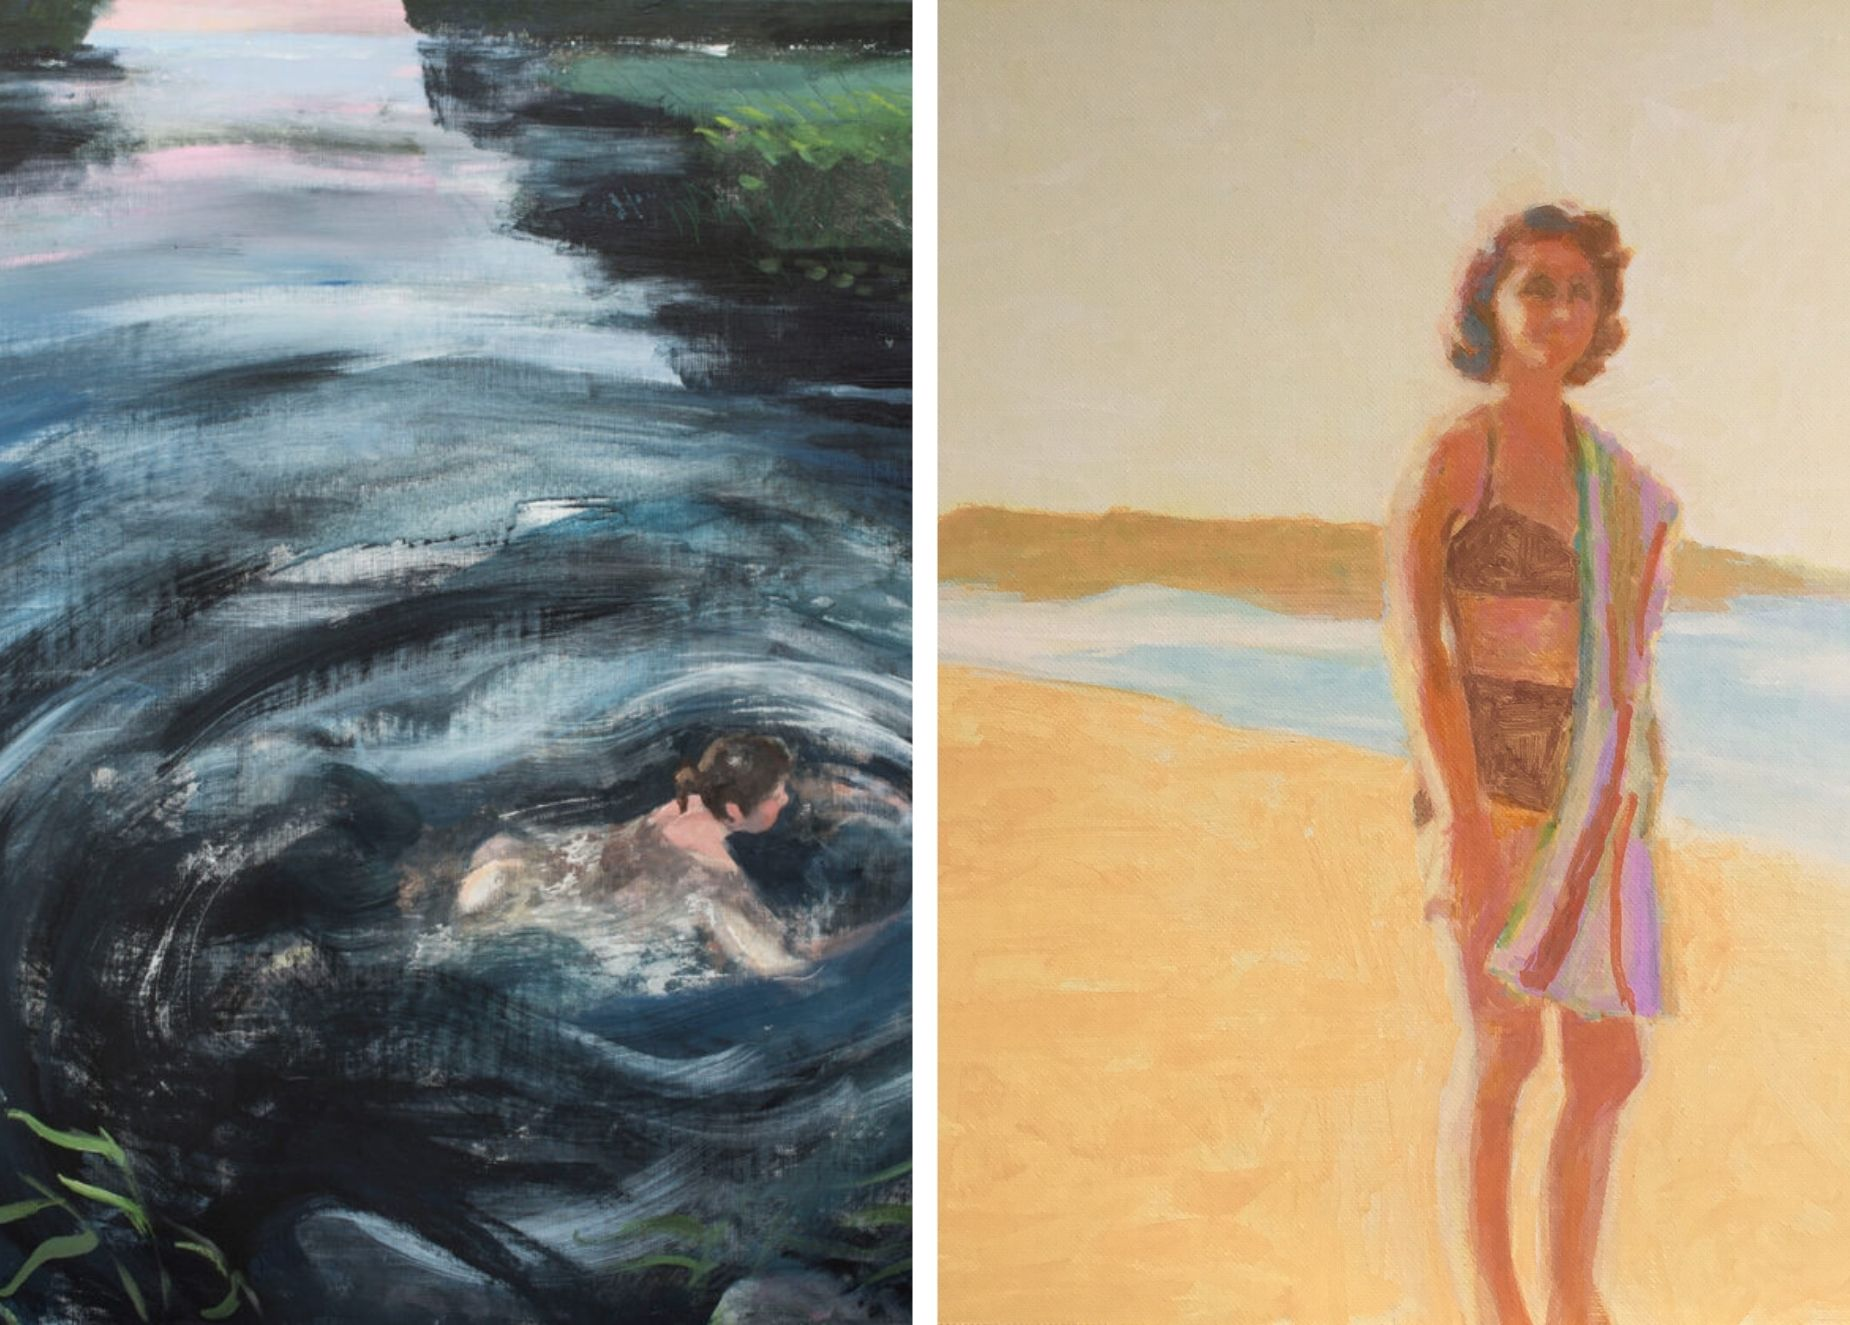 North Sea Woman is the art exhibition opening this week that you need to check out